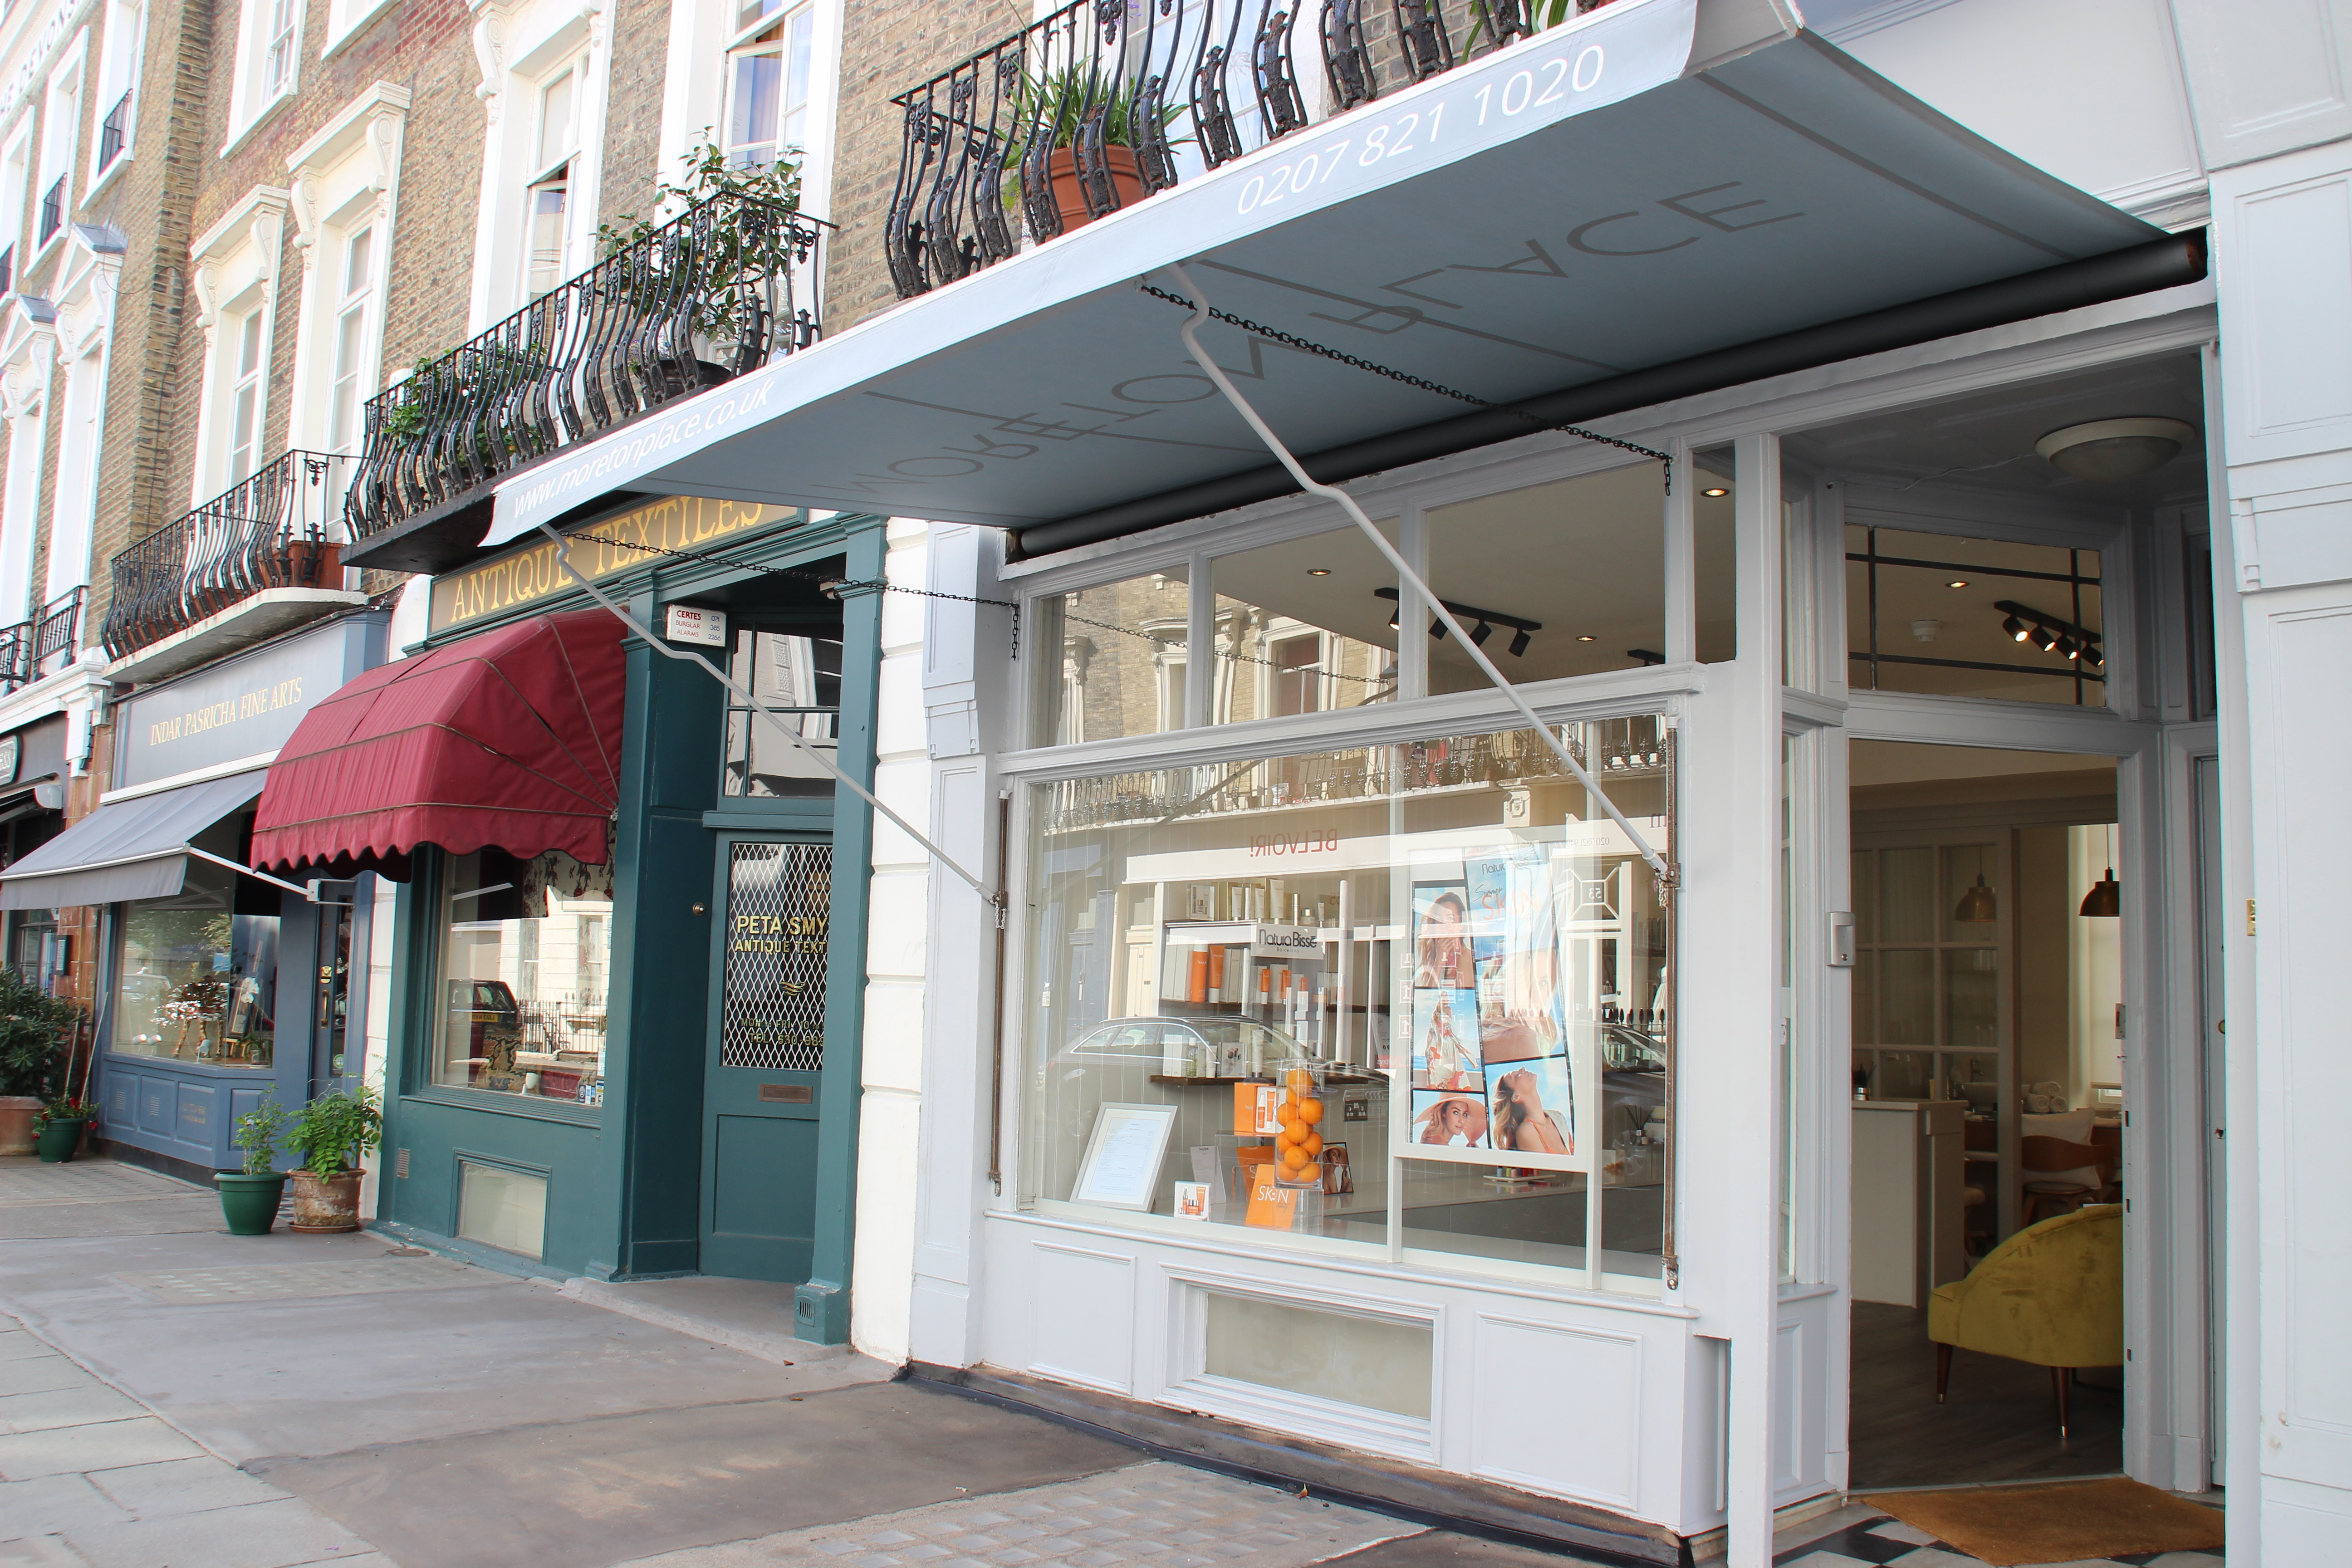 Moreton Place Beauty Wellbeing A Discrete Boutique Spa Tucked Away In Pimlico London